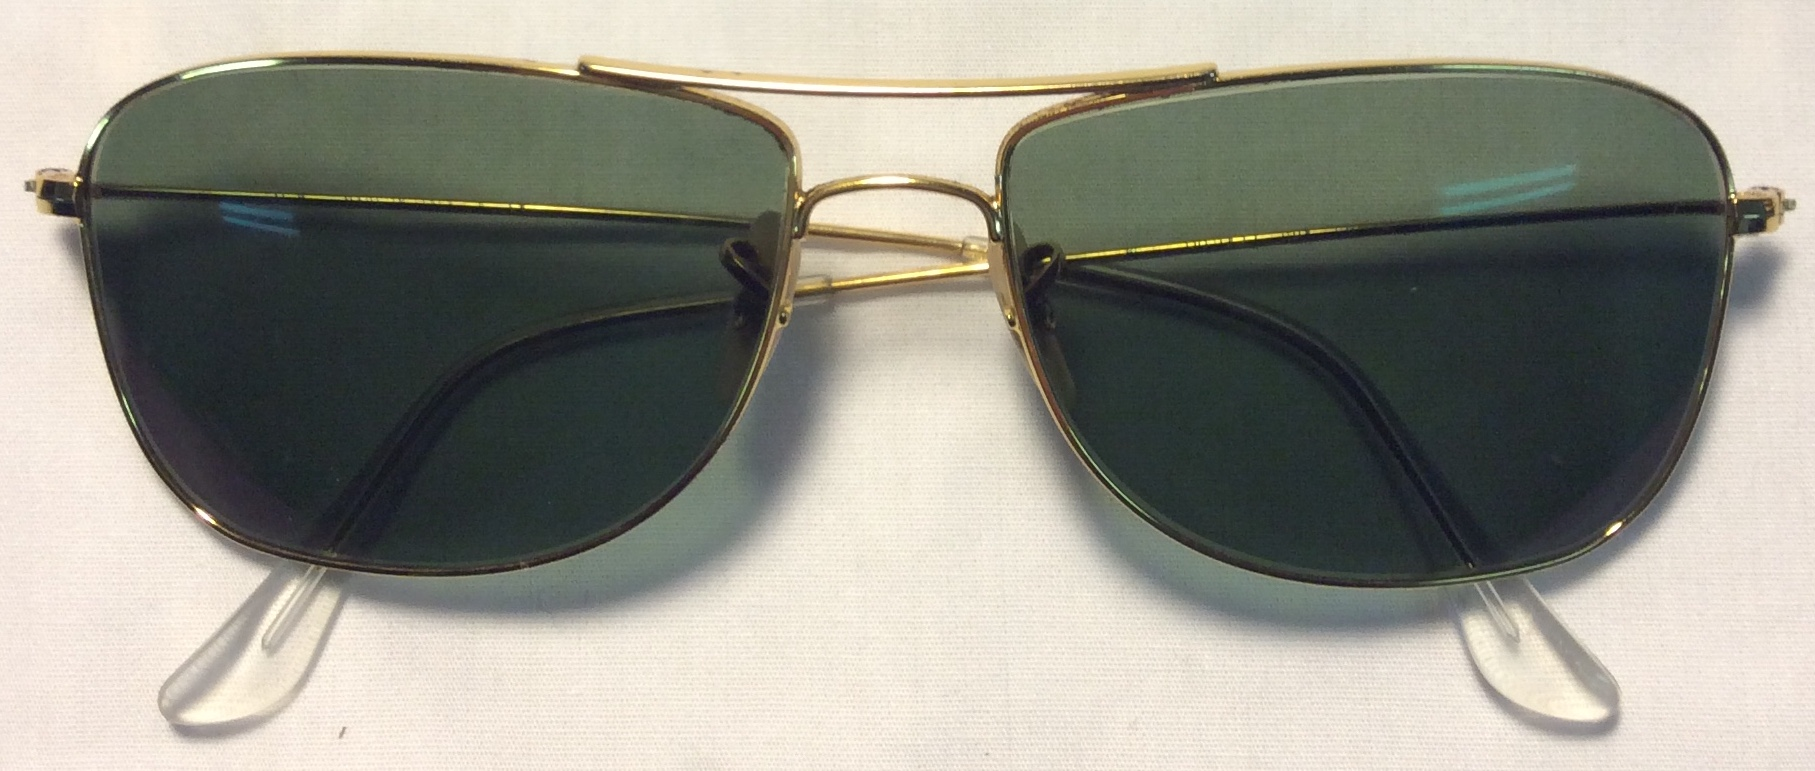 Ray-Ban Thin gold frames